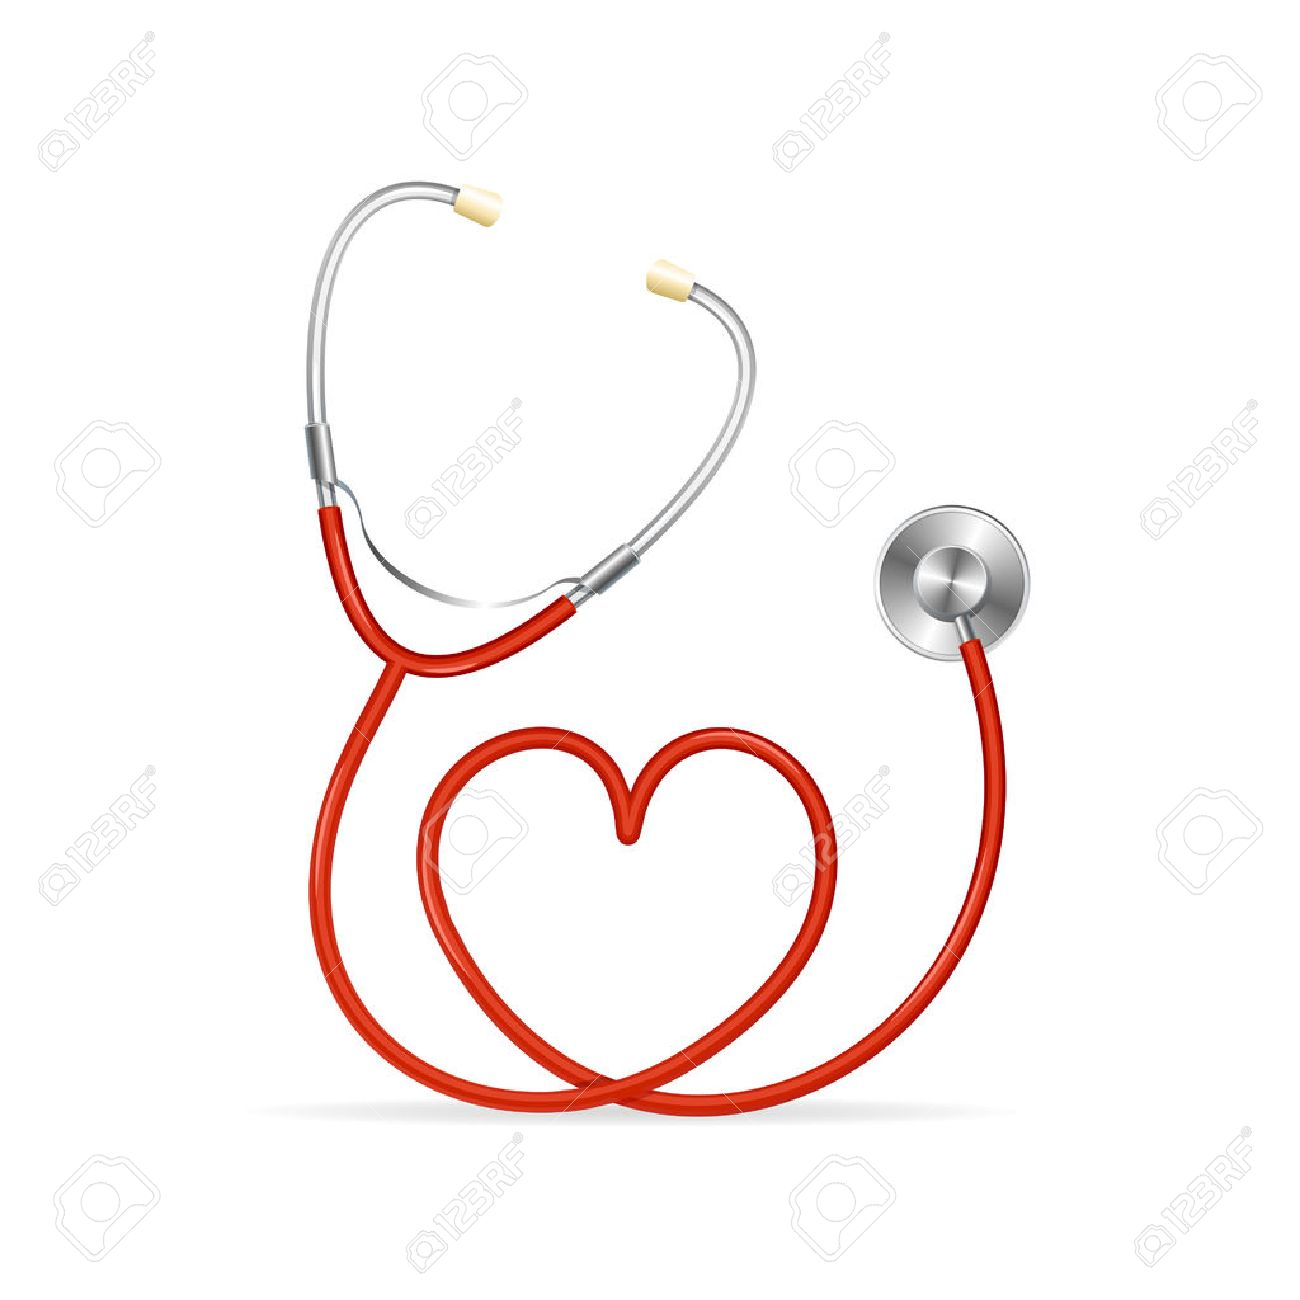 Vector Red Stethoscope in Shape of Heart - 36359200